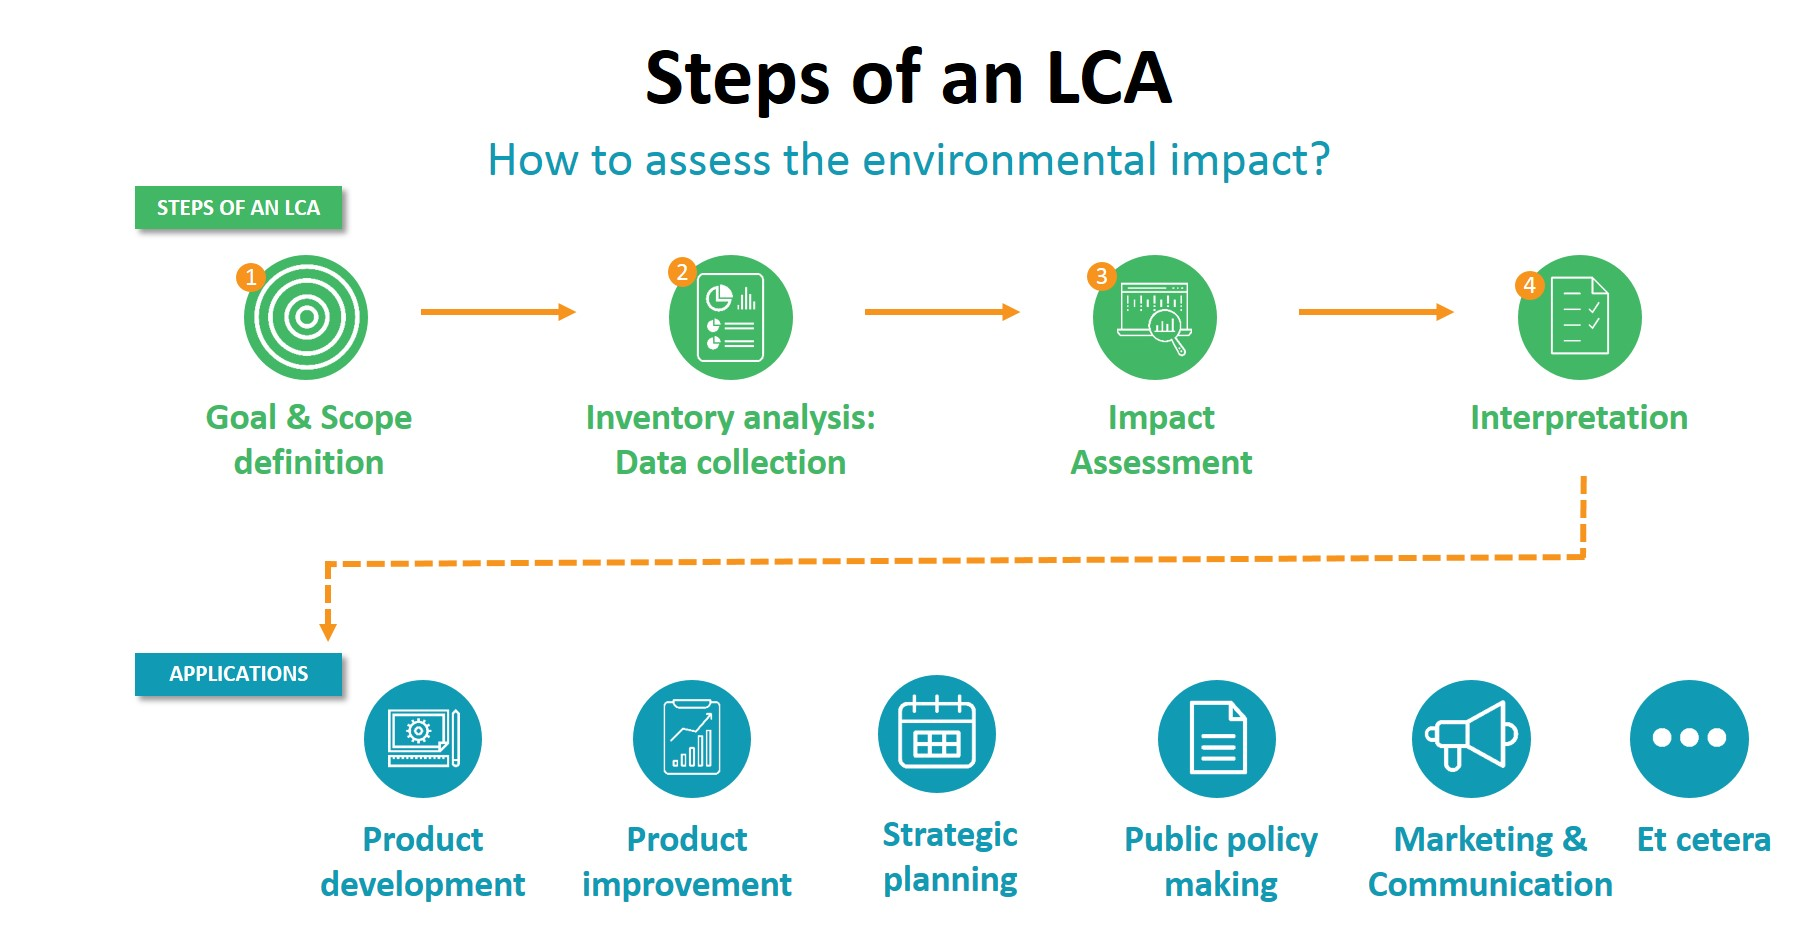 Steps of an Life Cycle Assessment